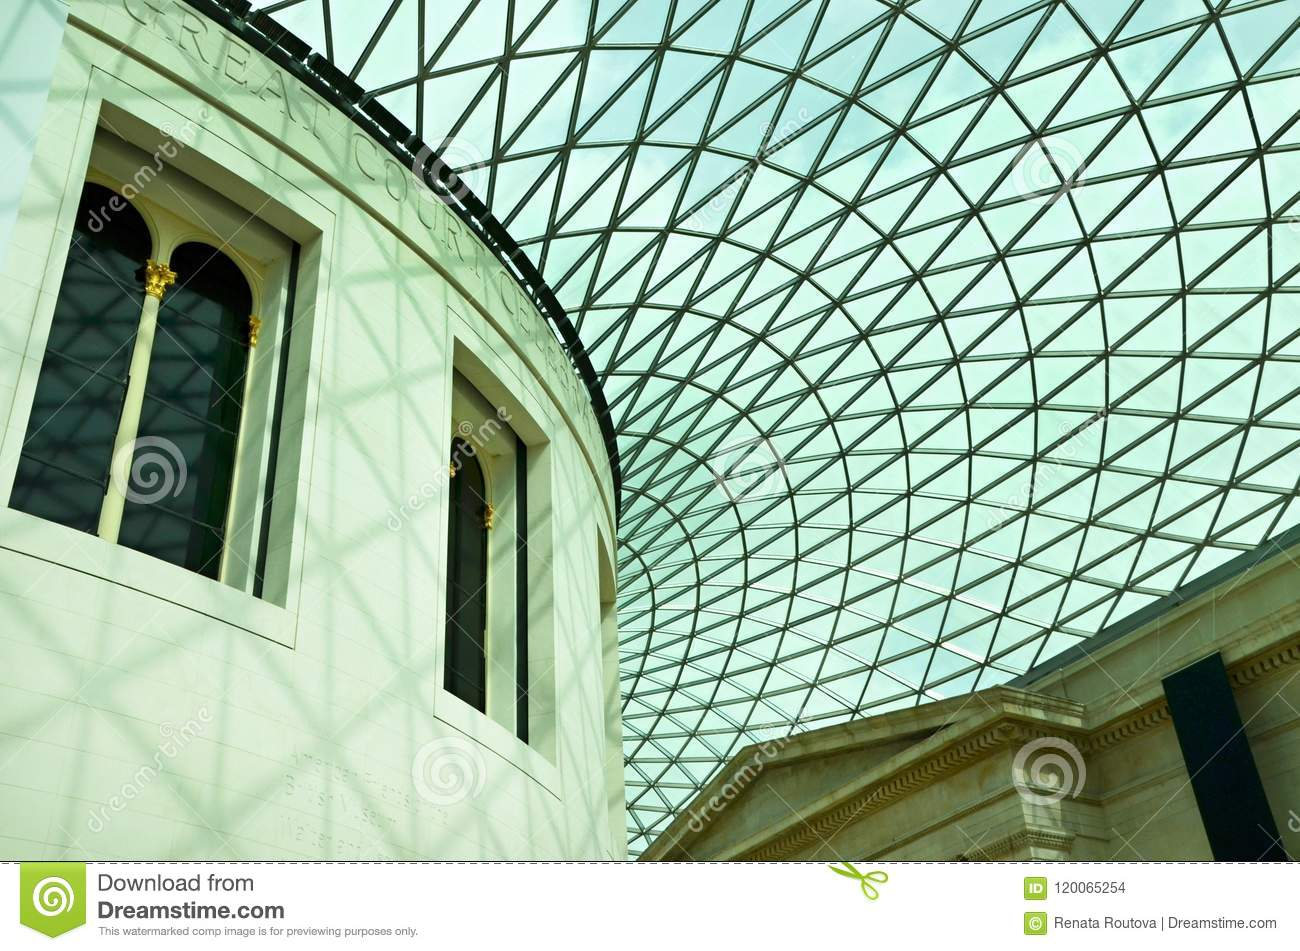 The British Museum - geometrical patterns on the roof